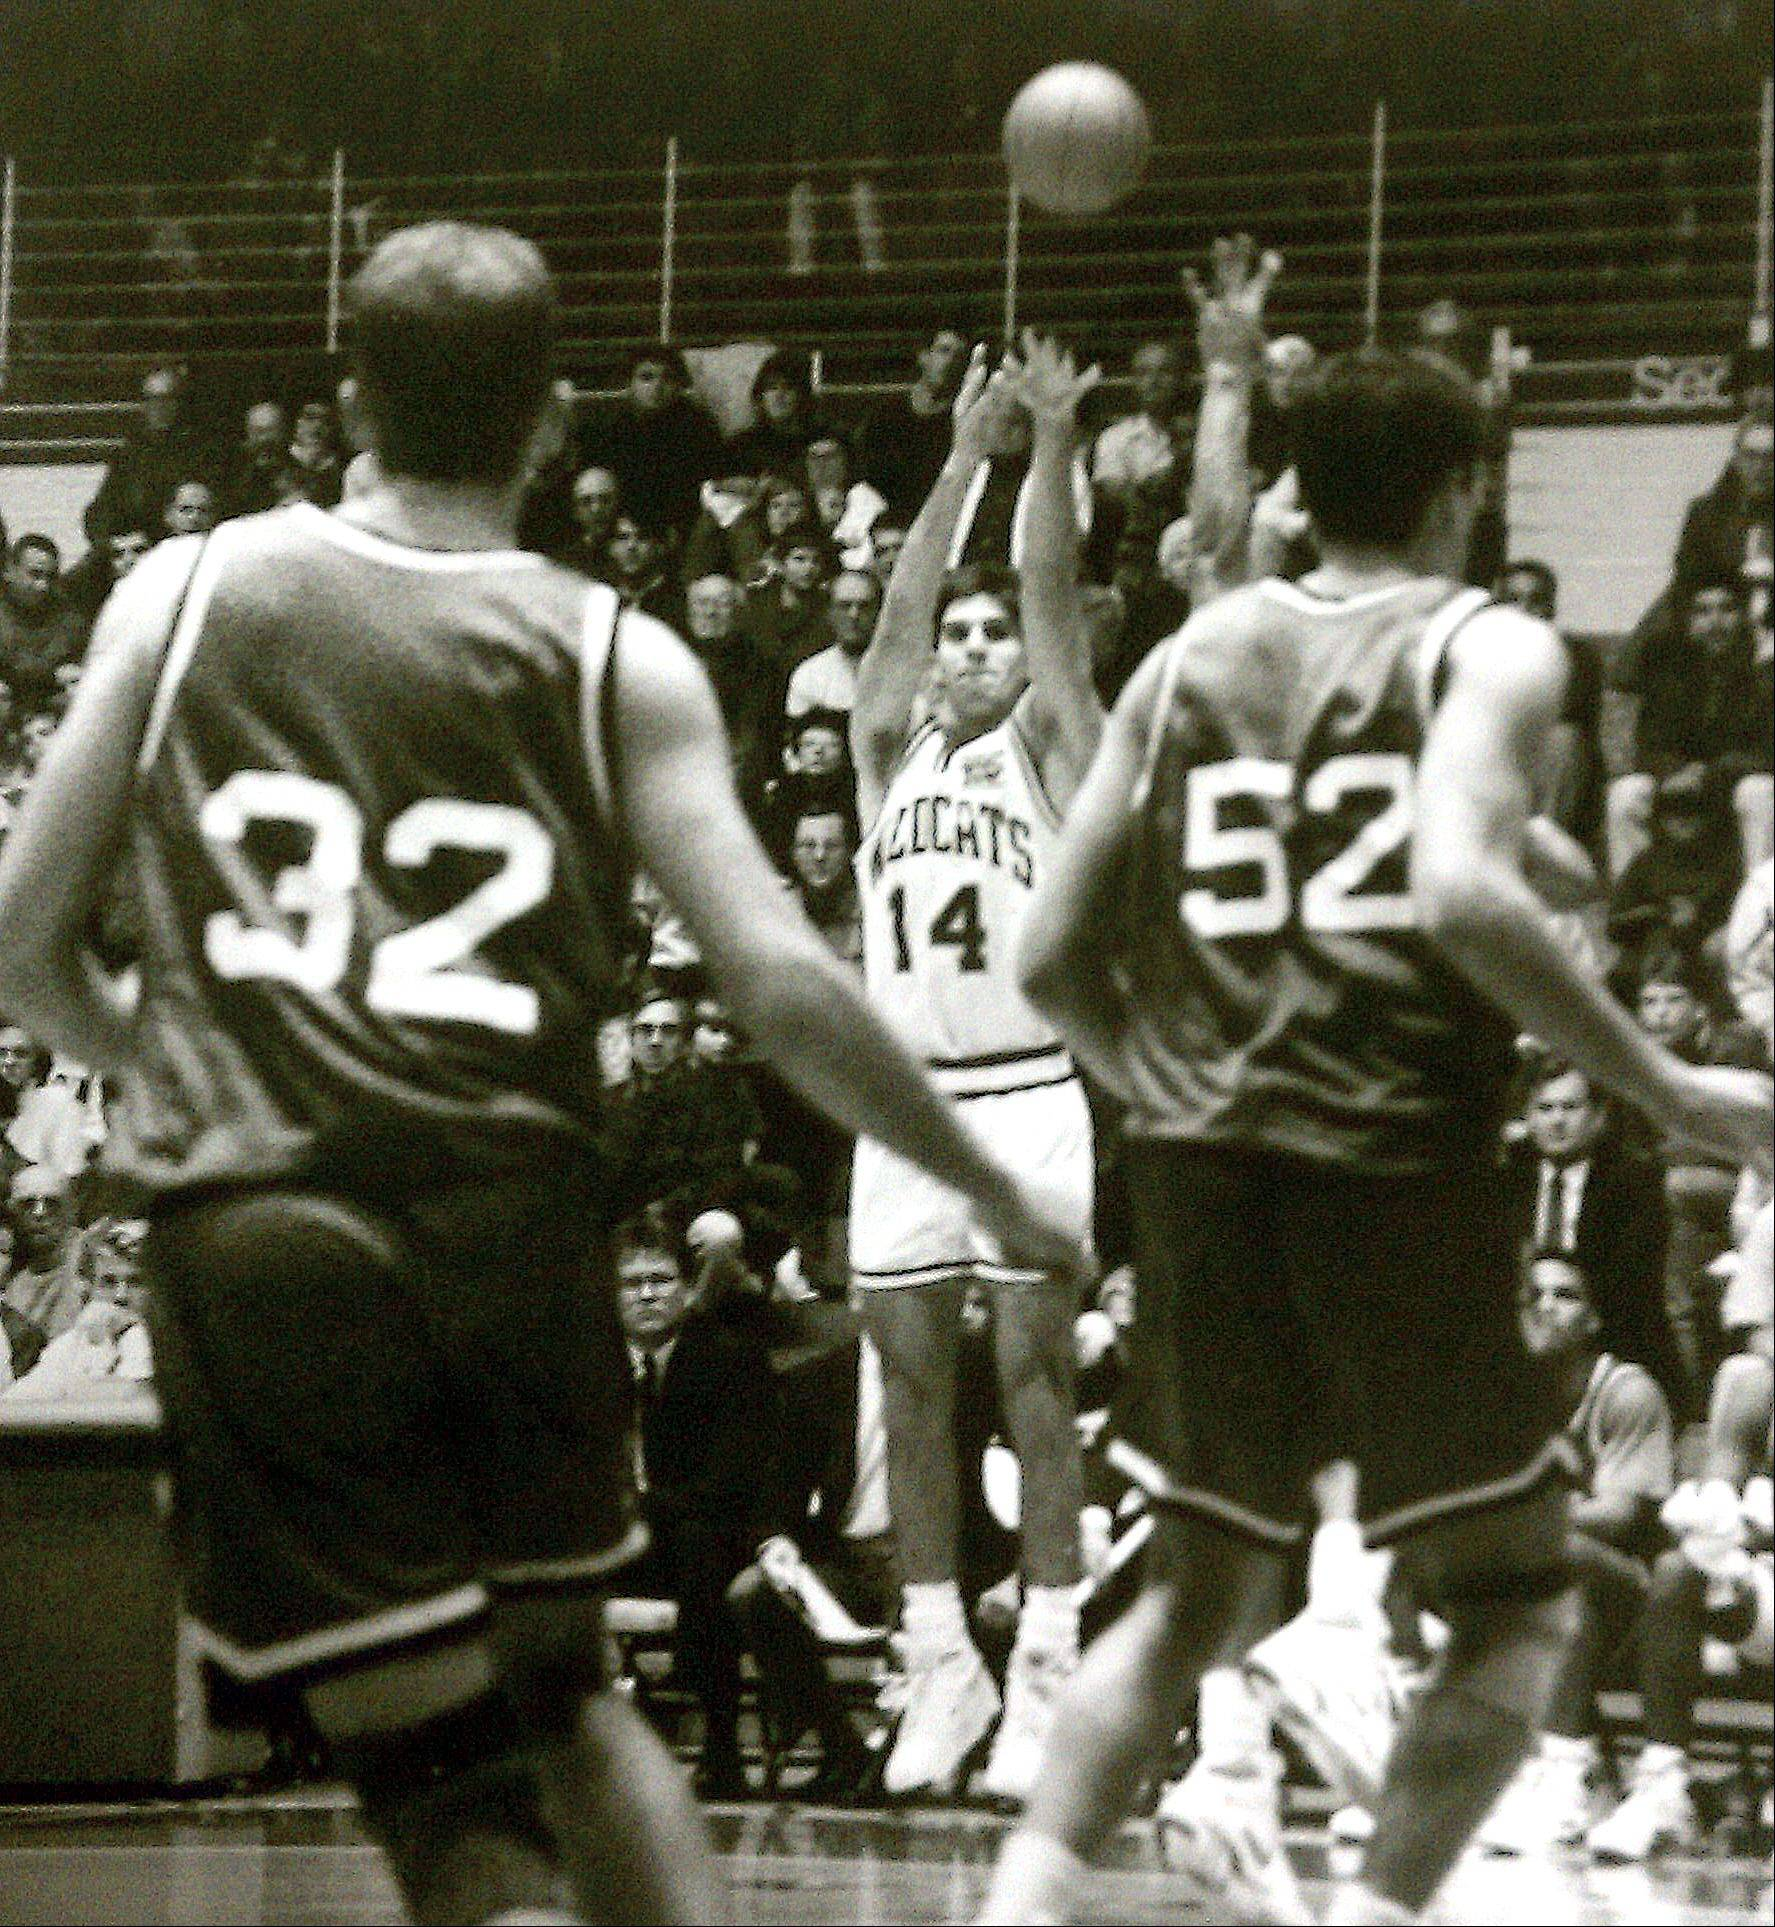 Former Fremd basketball star Todd Leslie makes a three-point-shot for the Northwestern Wildcats. Leslie holds the NCAA record for consecutive three-pointers made with 15 in a four-game span in December 1990. A guard from Auburn has 11 straight going into today's action.